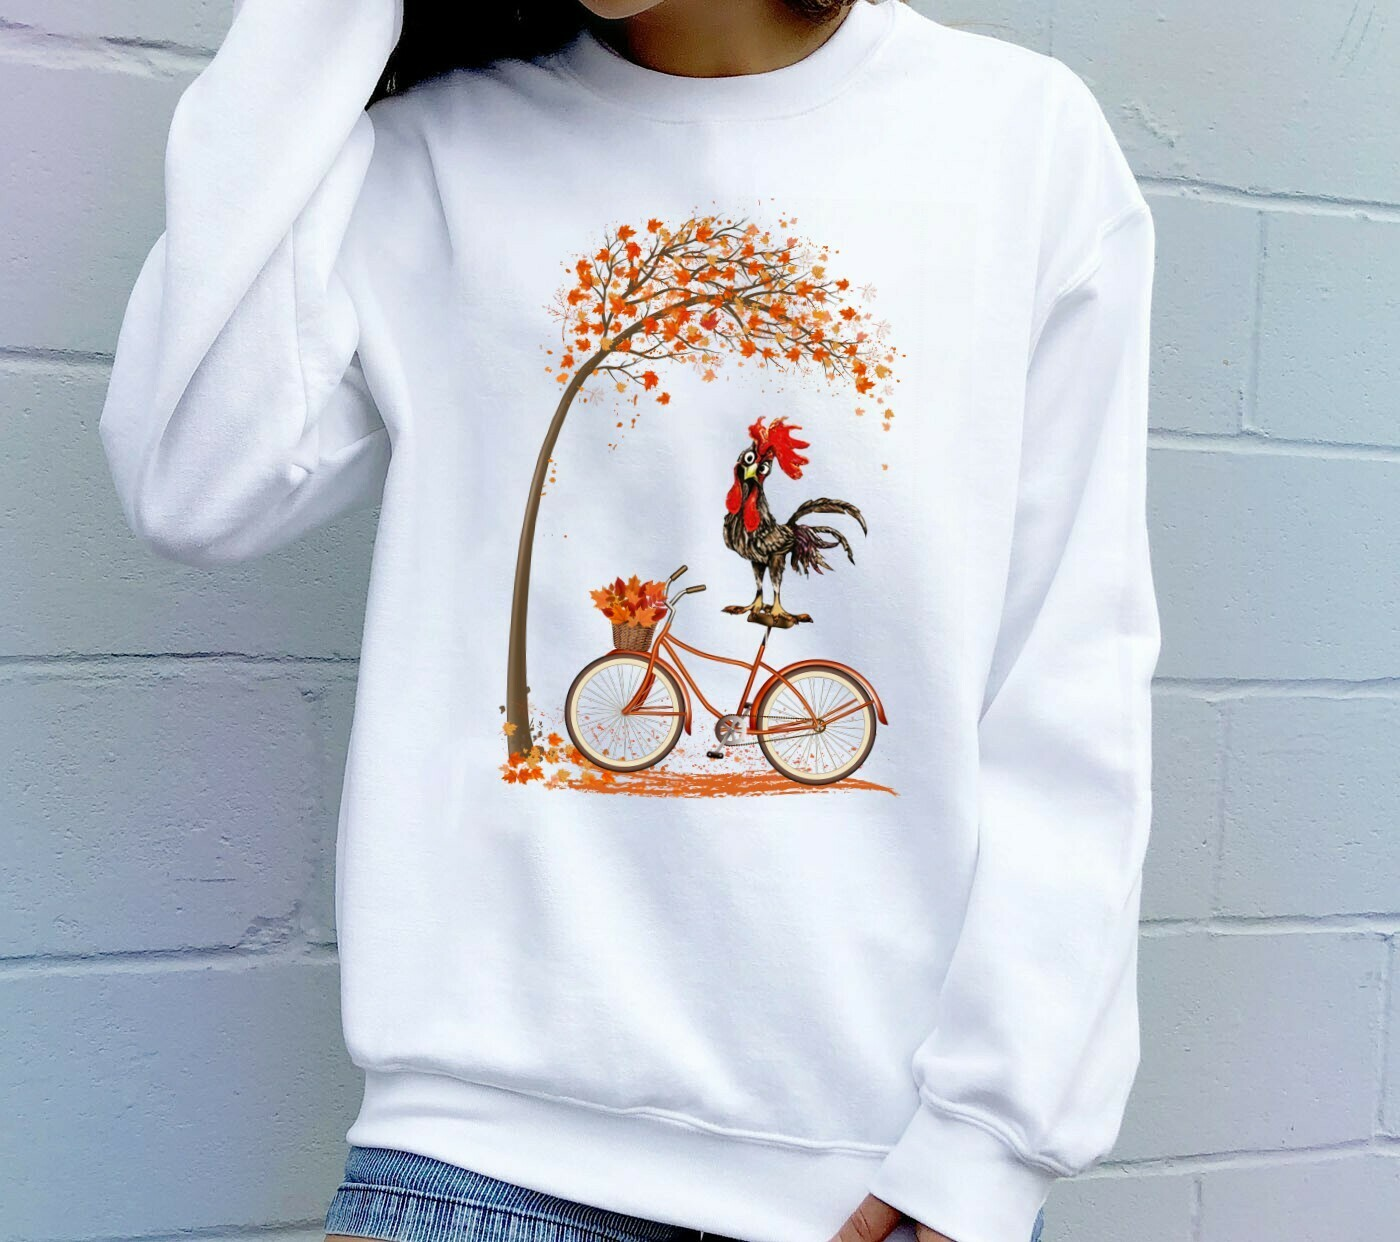 Happy Fall Autumn Leaves Chicken Halloween Shirt Gifts For Lovers Autumn Funny Chicken Farmers Family Vacation Party T-Shirt Long Sleeve Sweatshirt Hoodie Jolly Family Gifts